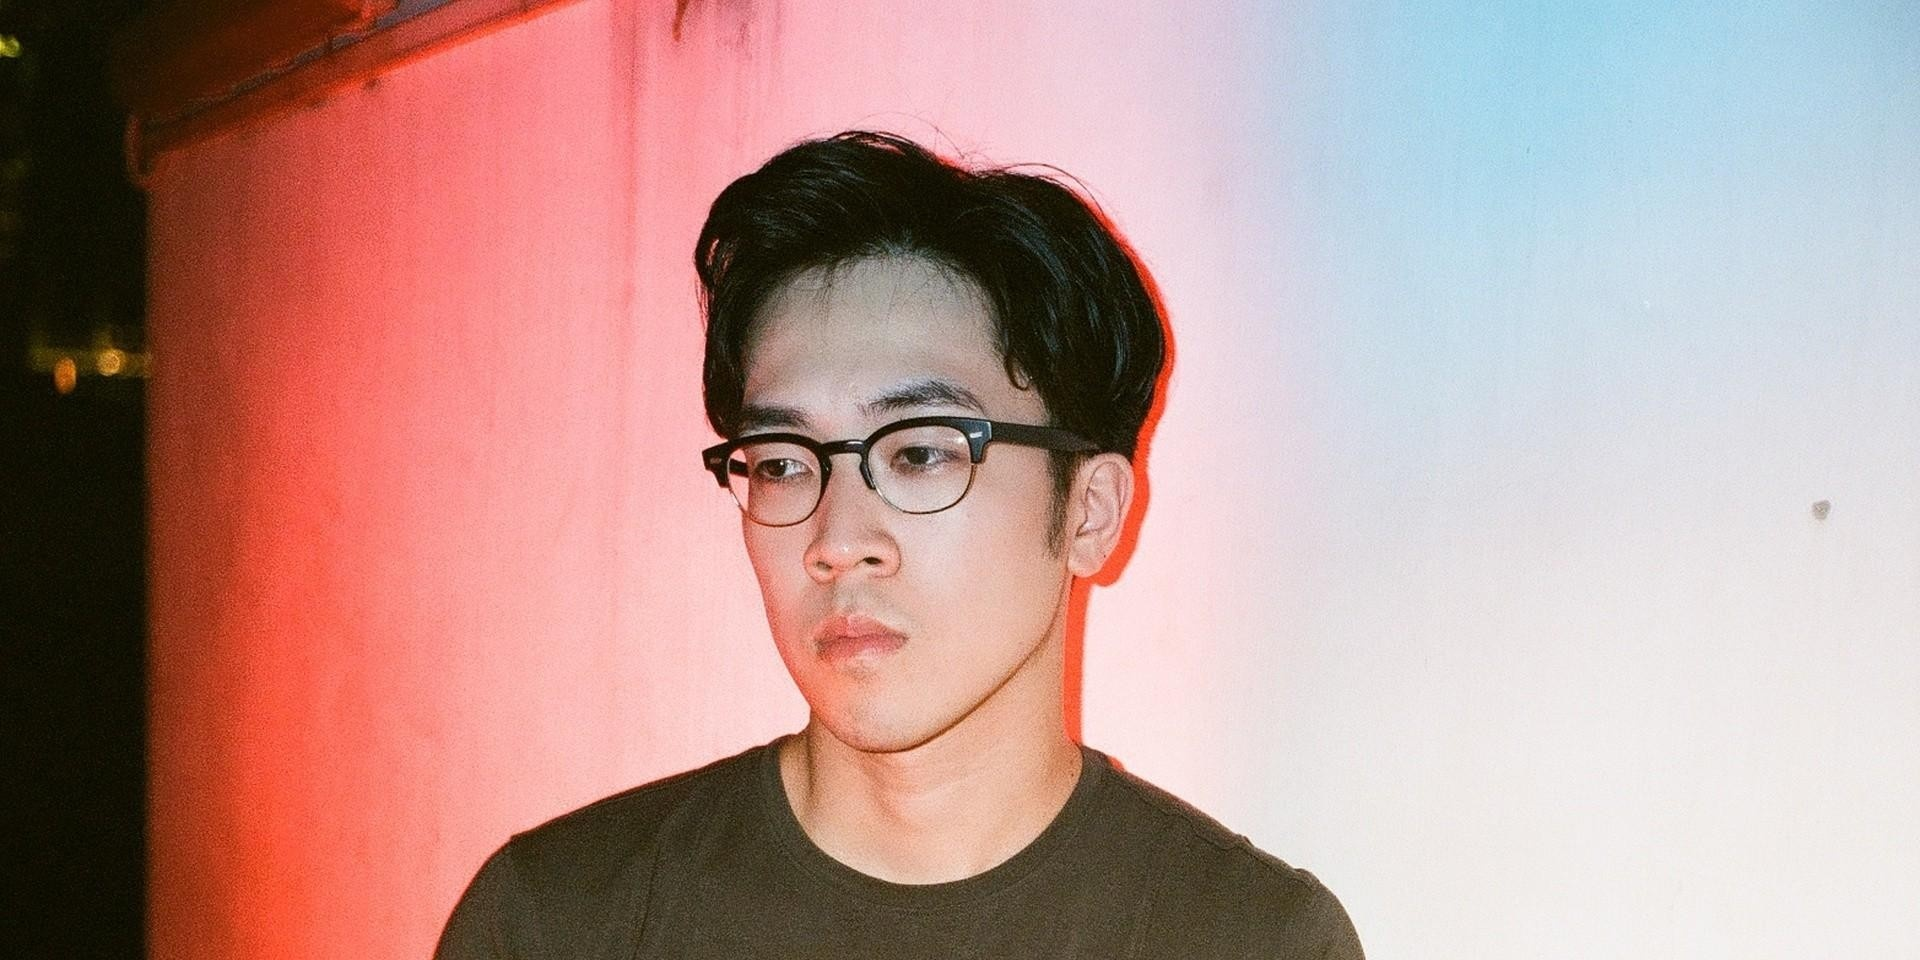 Charlie Lim explores new electronic ground with 'Zero-Sum' – listen